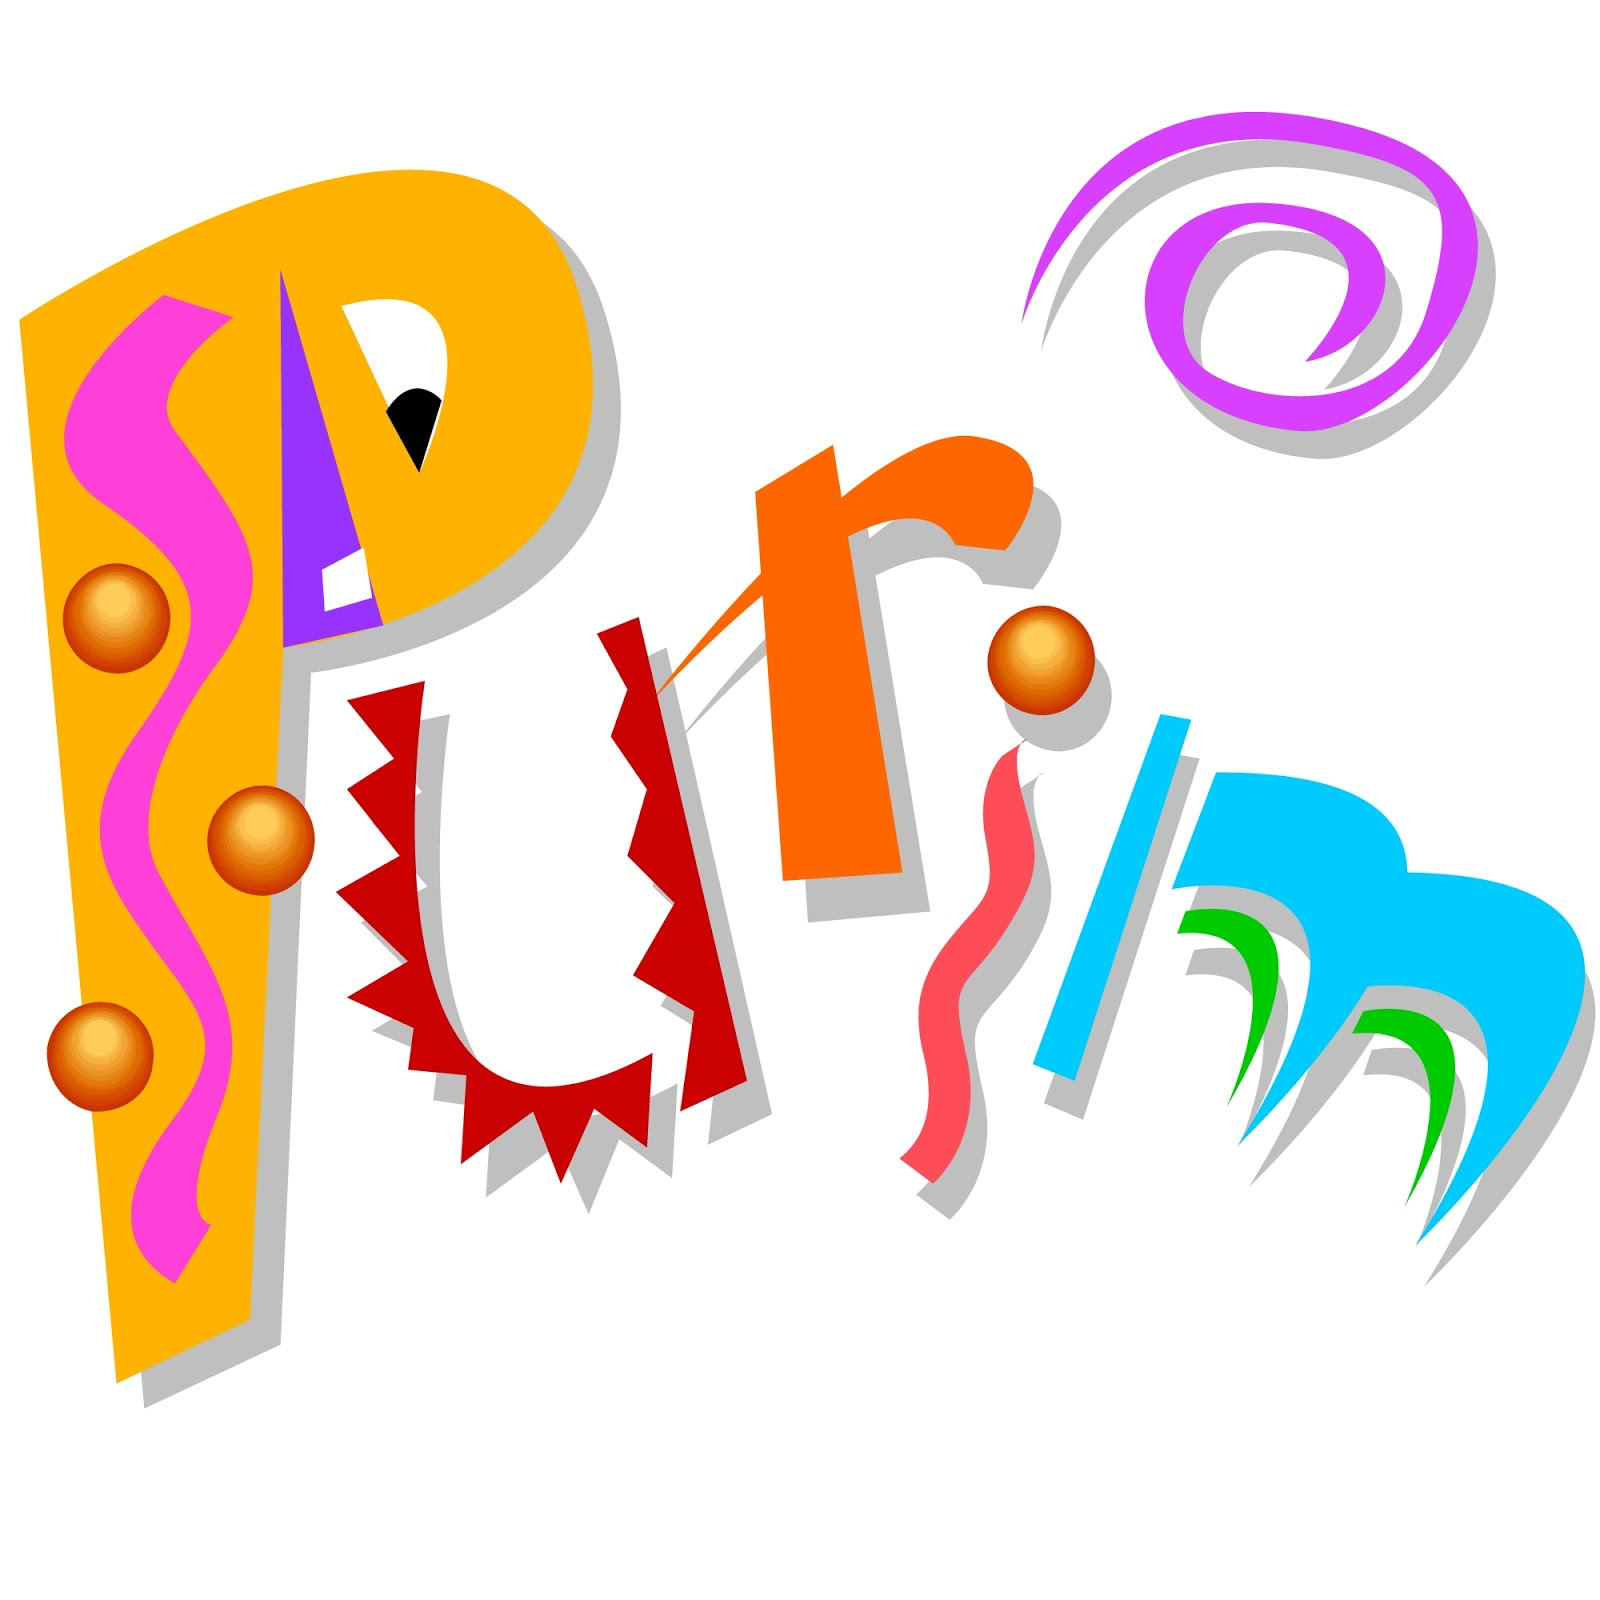 Temple beth israel . Purim clipart carnival